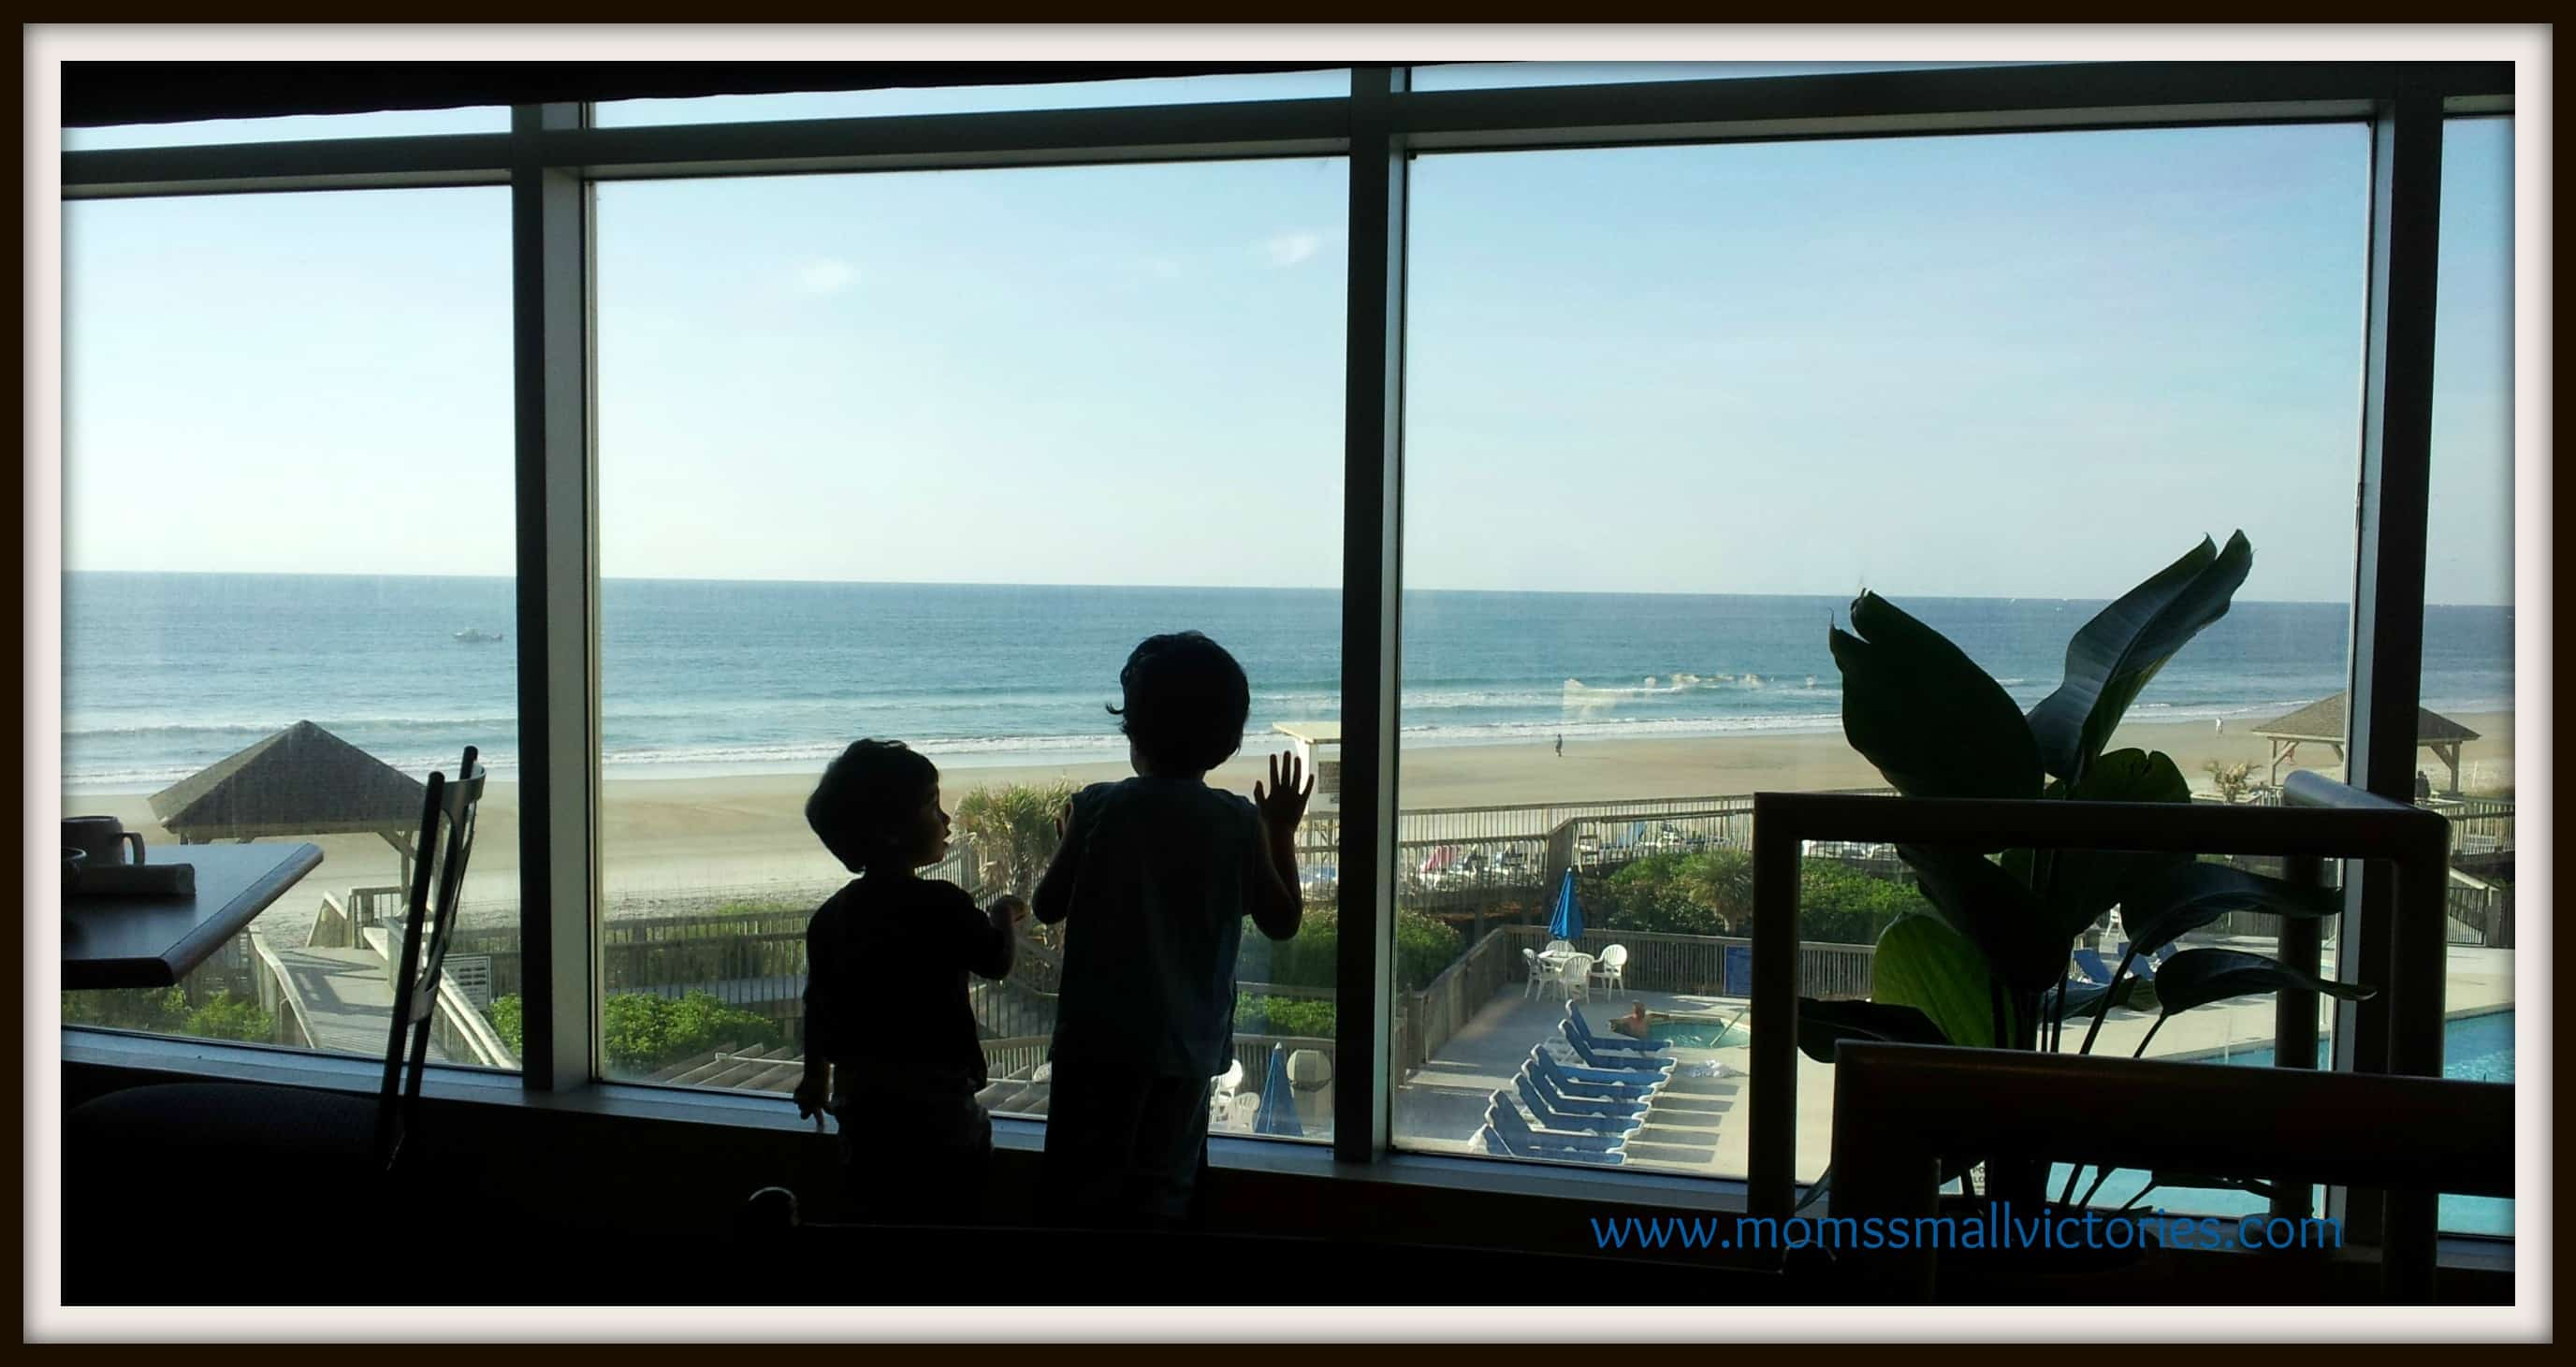 Wordless Wednesday: Breakfast at the Beach